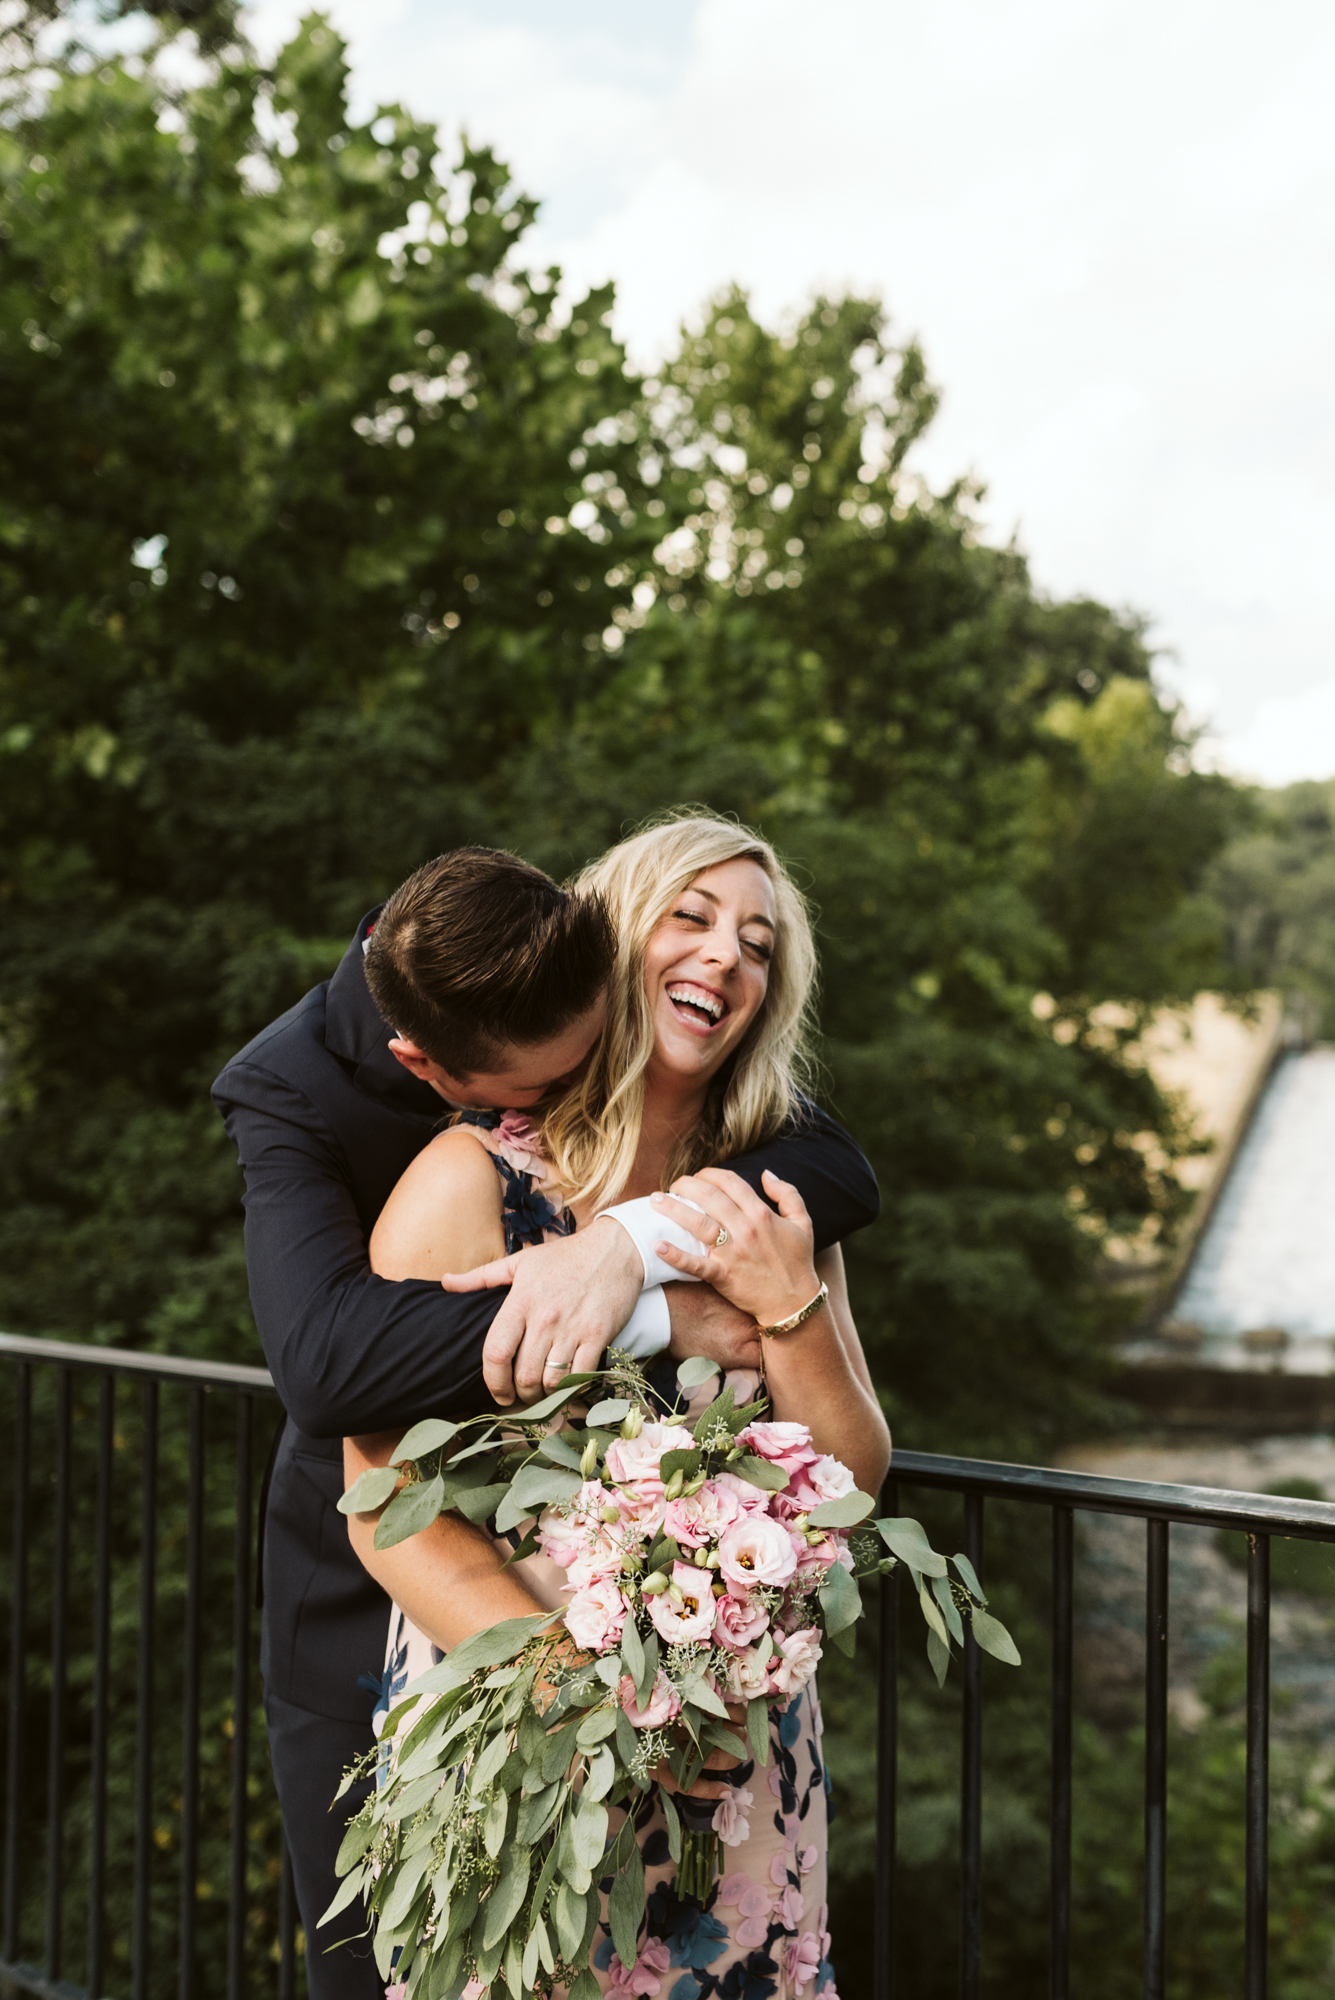 Outdoor Wedding, Casual, Simple, Lake Roland, Baltimore, Maryland Wedding Photographer, Laid Back, DIY Flowers, Bouquet with Eucalyptus and Lisianthus, Bride and Groom Hugging and Laughing